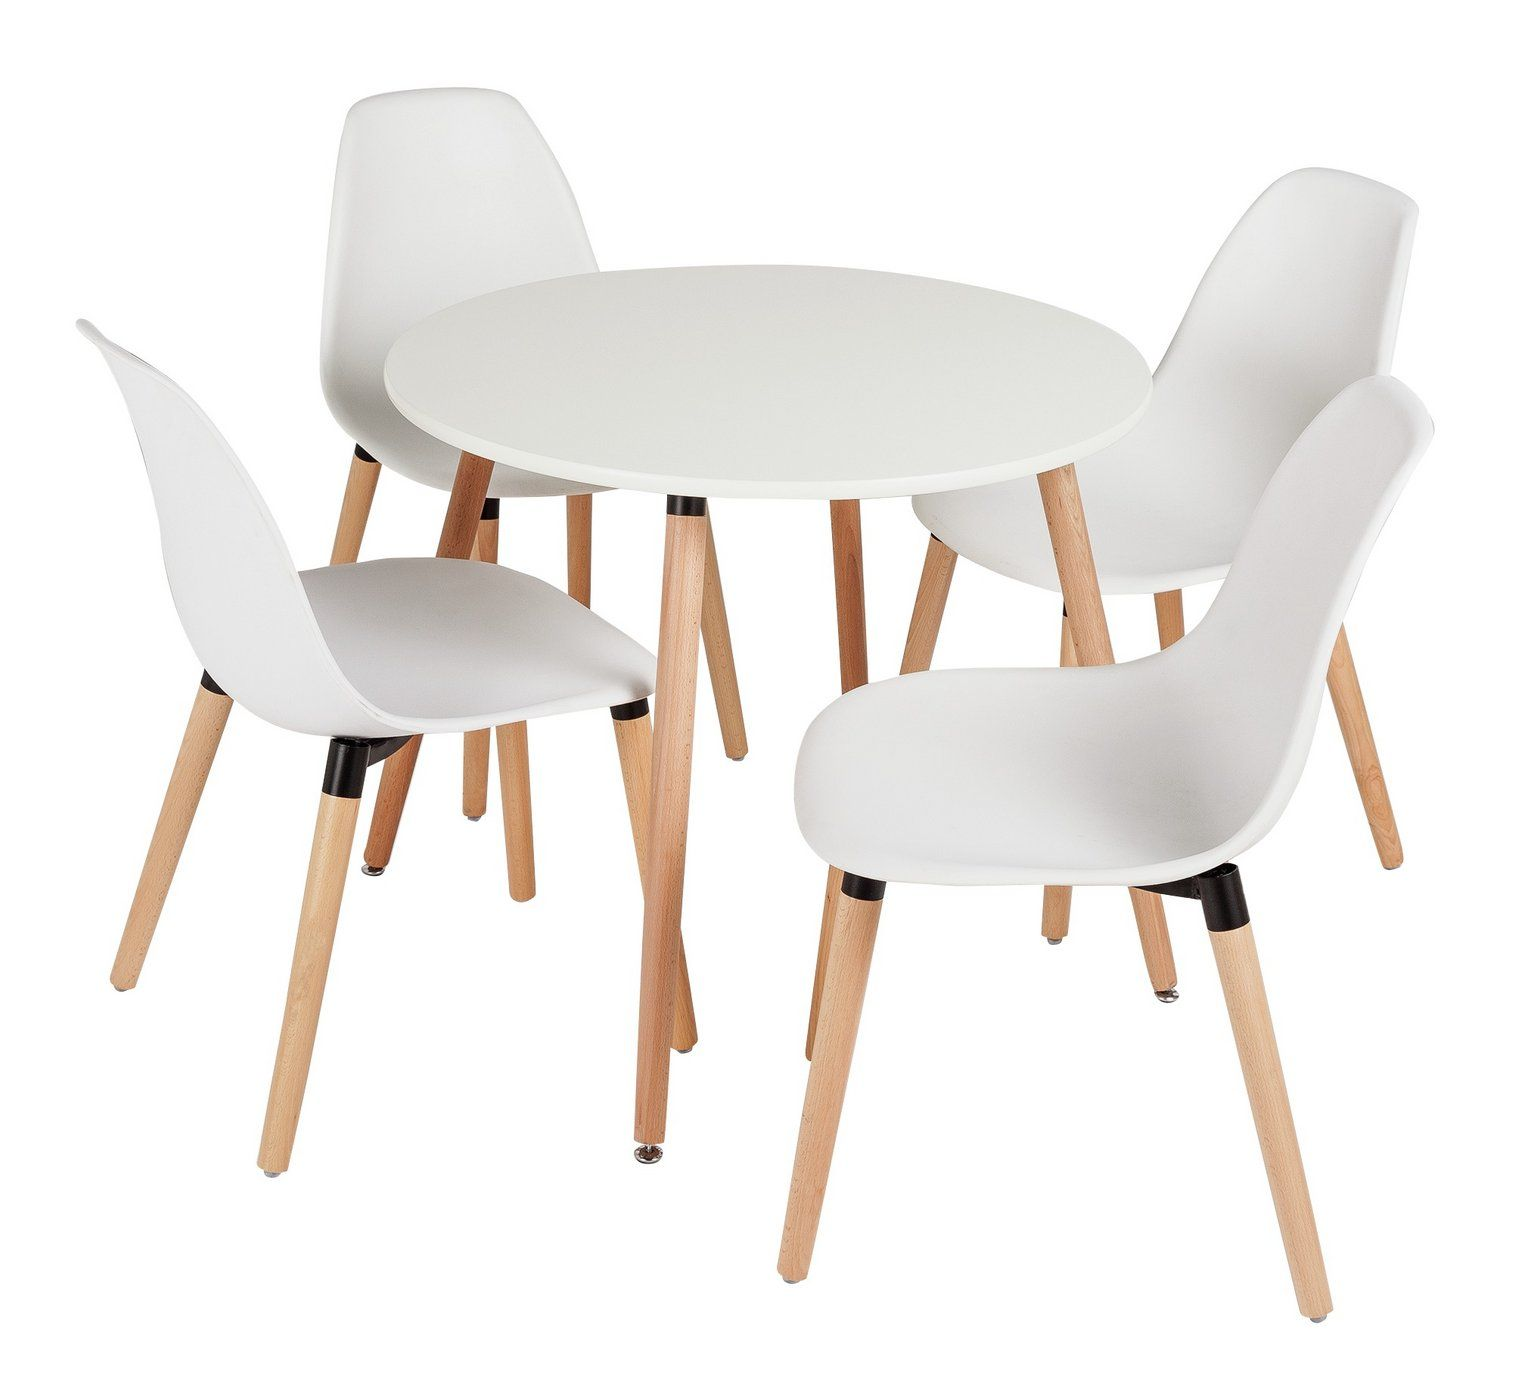 Buy HOME Berlin Round Dining Table & 4 Chairs White at Argos